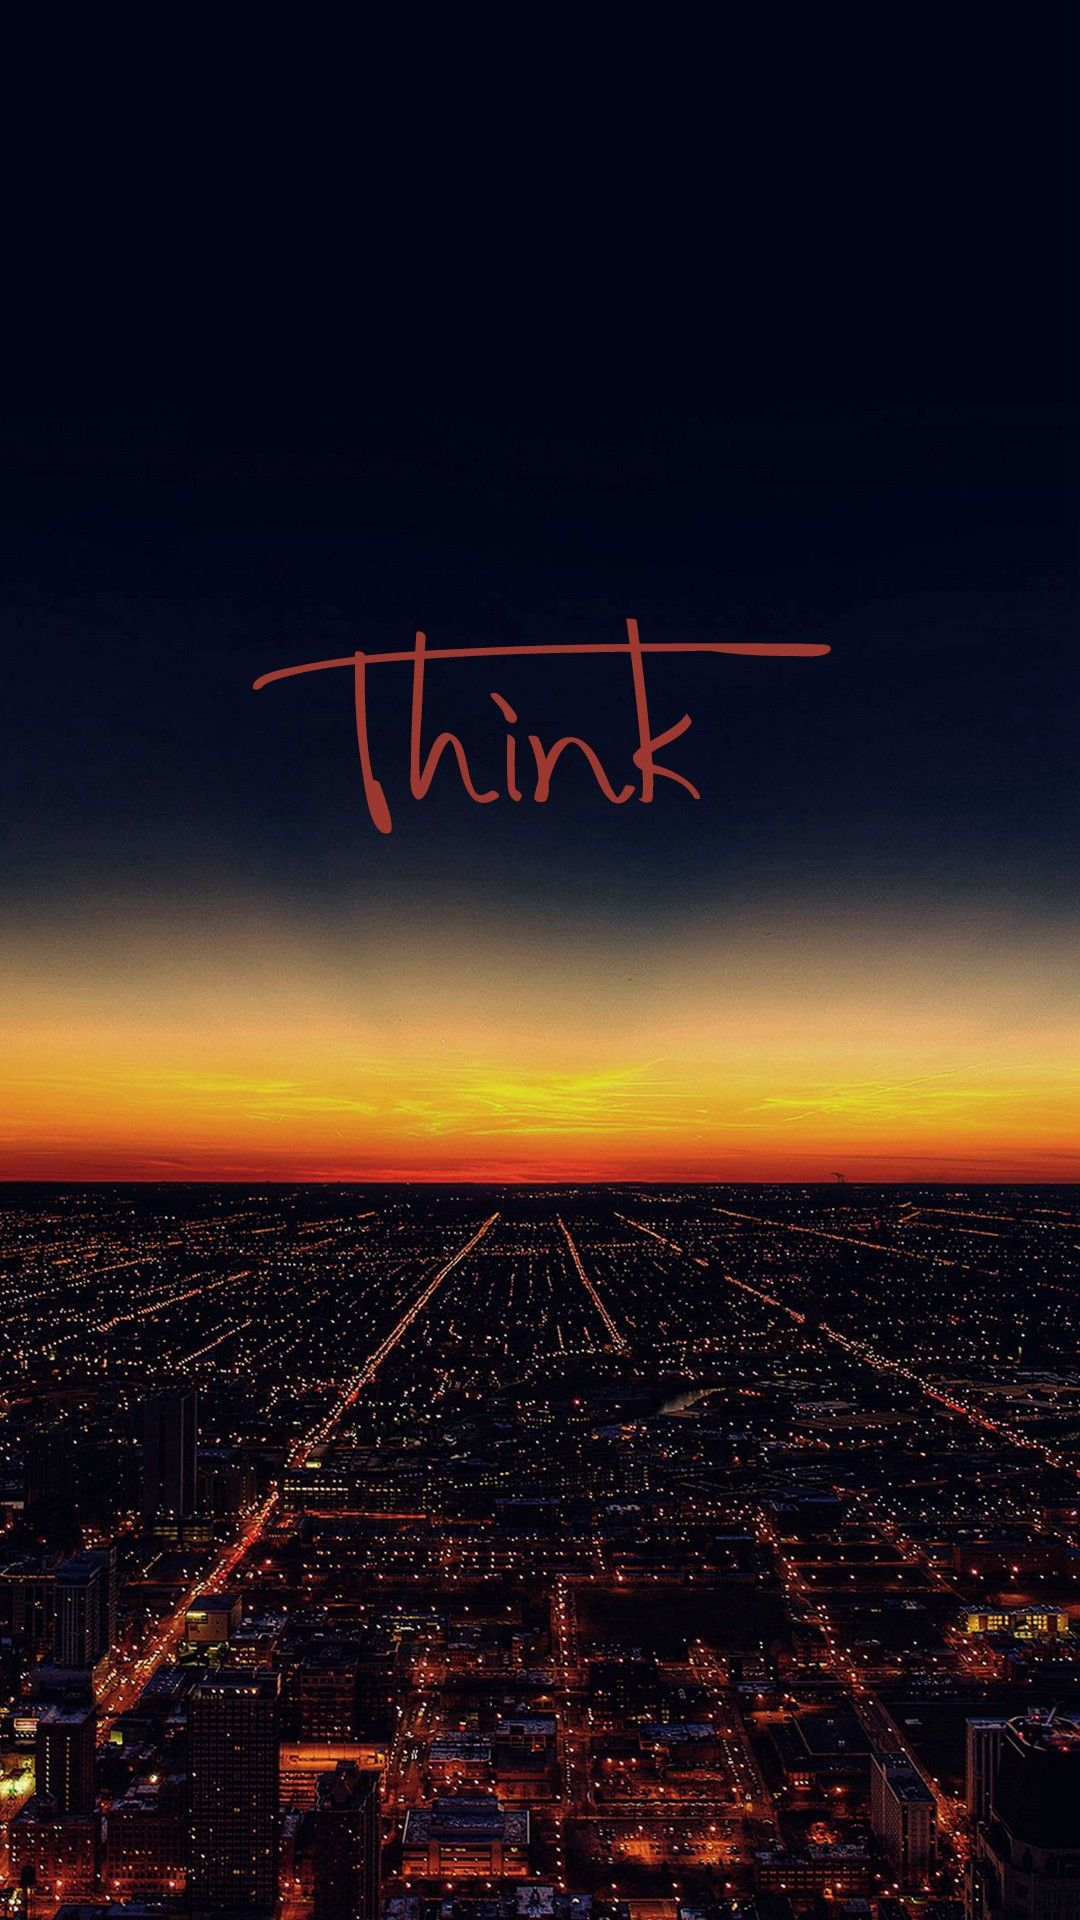 Think Wallpaper - [1080x1920] download and share beautiful image in best available resolution.